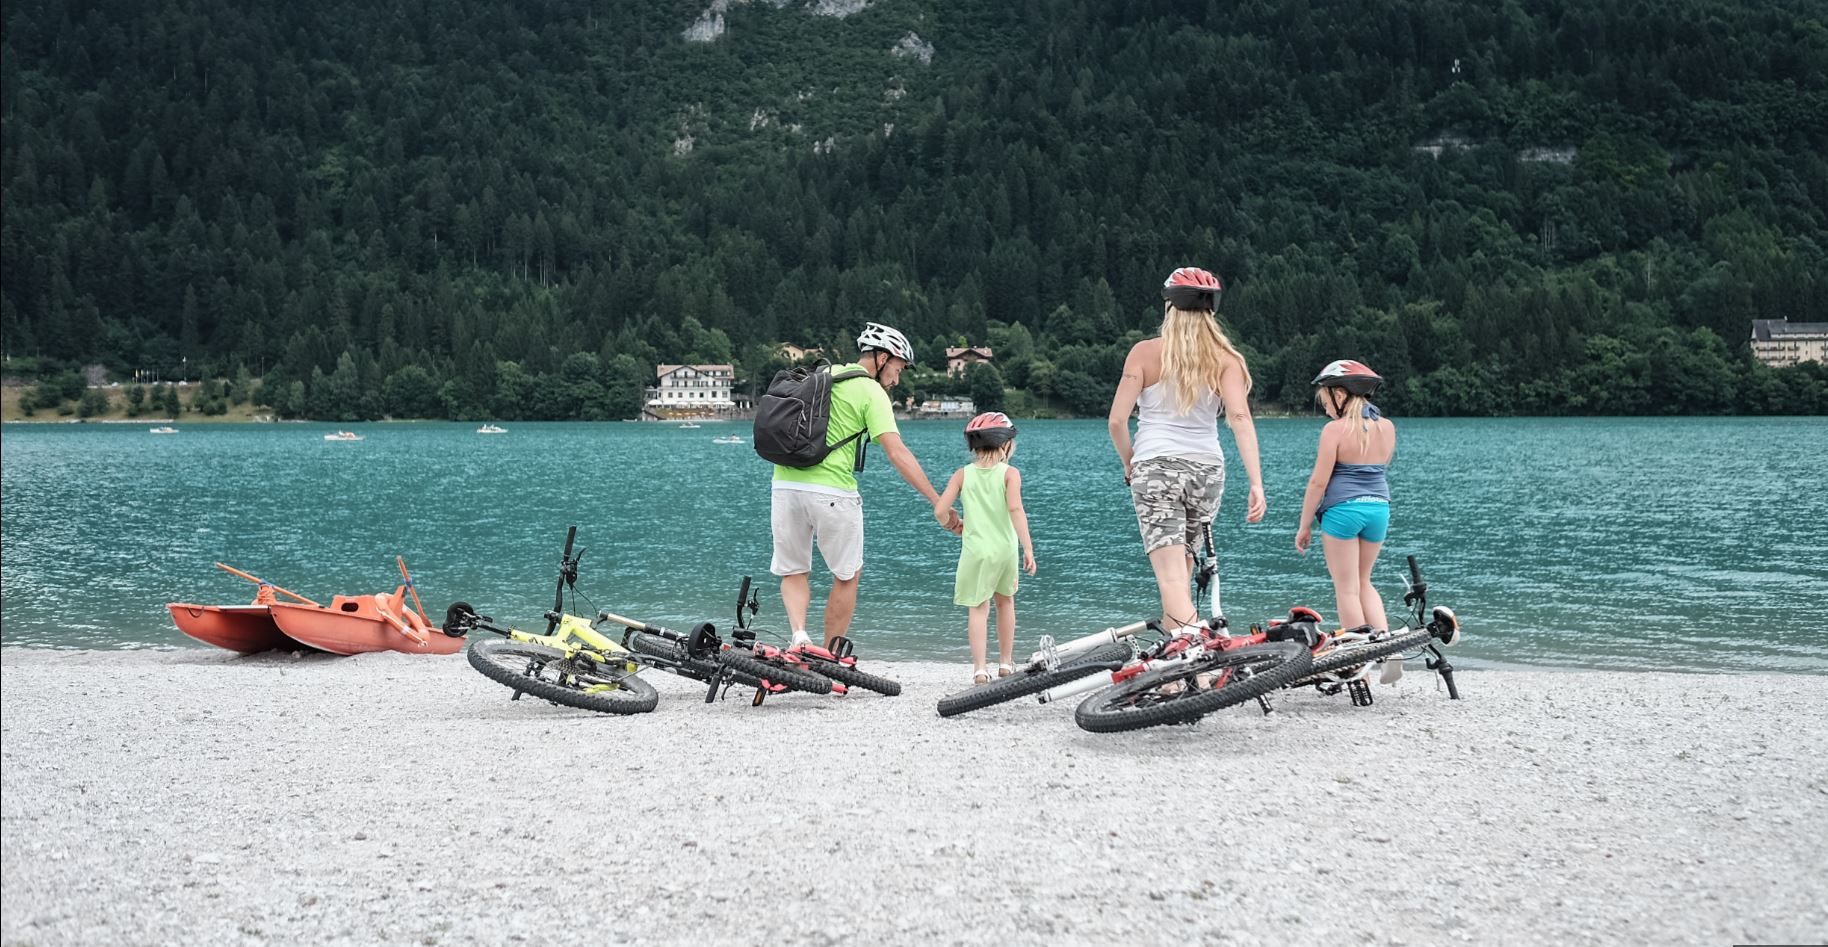 Percorsi di Mountain Bike per famiglie